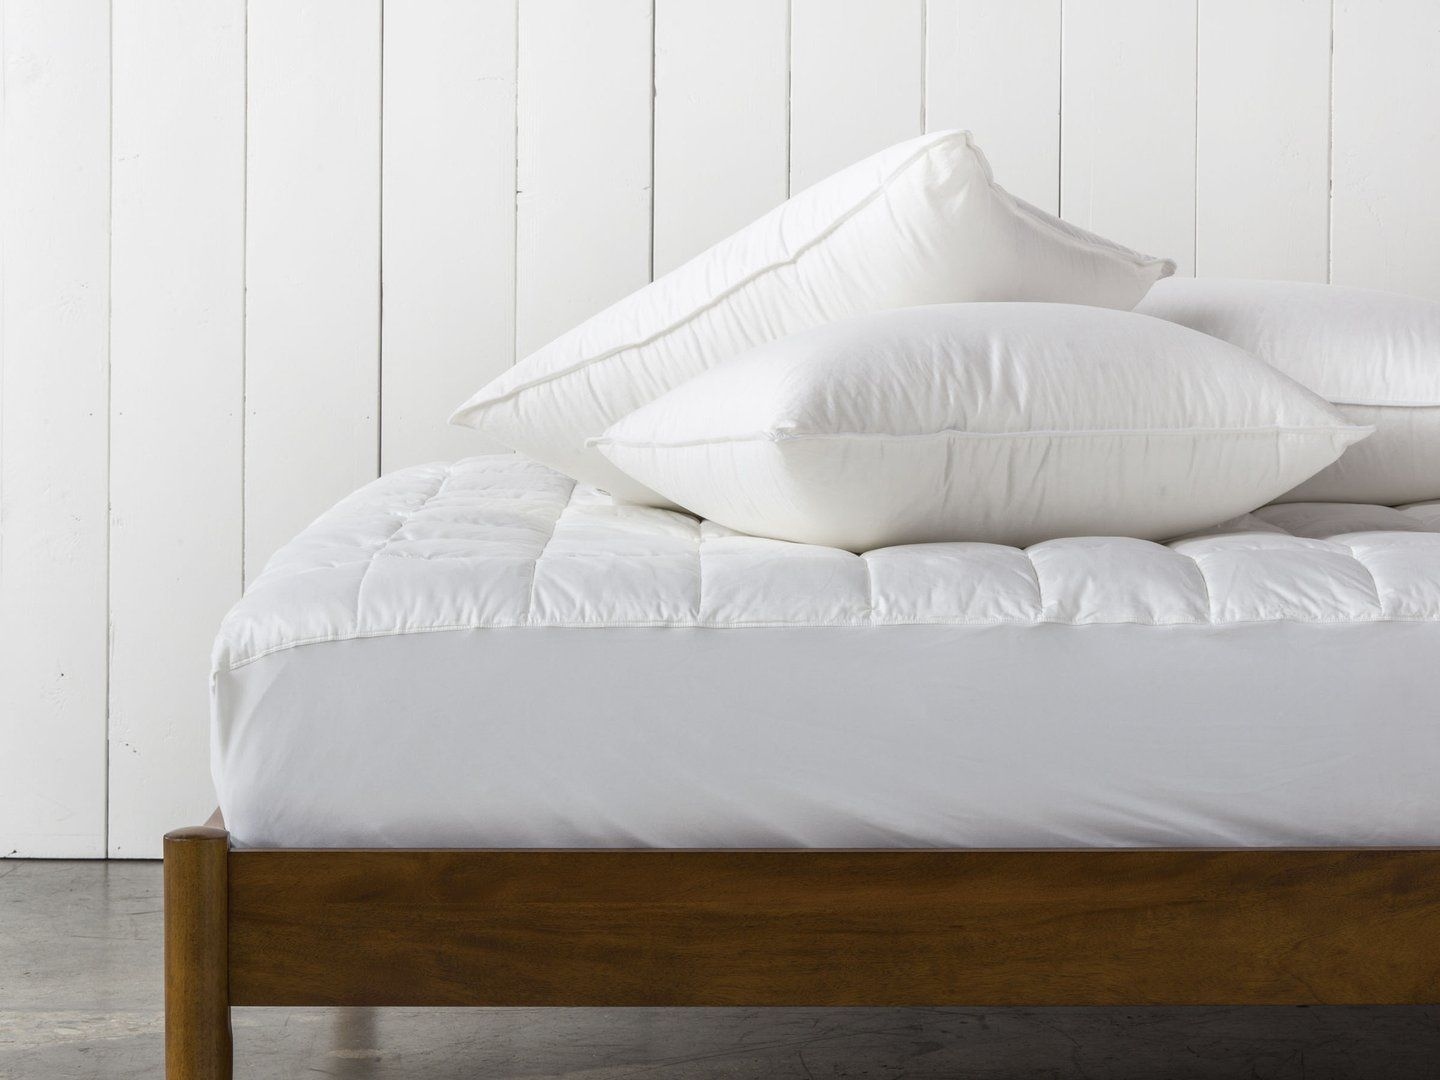 10 Best Pillows for Back Sleepers, According to Reviewers